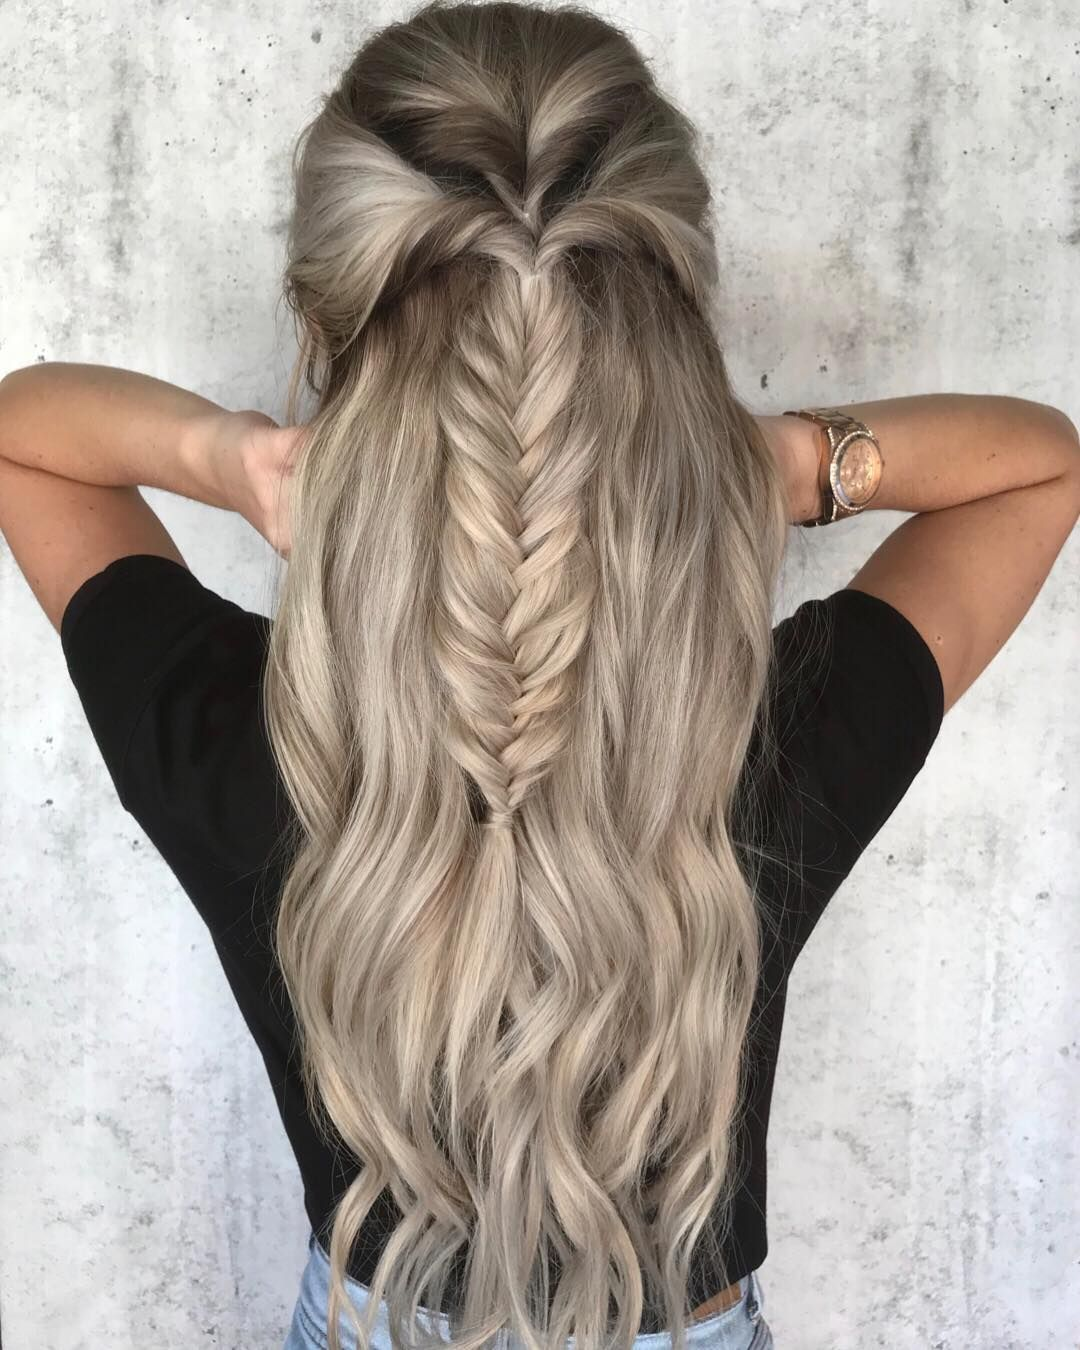 Fishtail Braid Hairstyles Cool 39 Trendy  Messy & Chic Braided Hairstyles  Fishtail Braids Braid